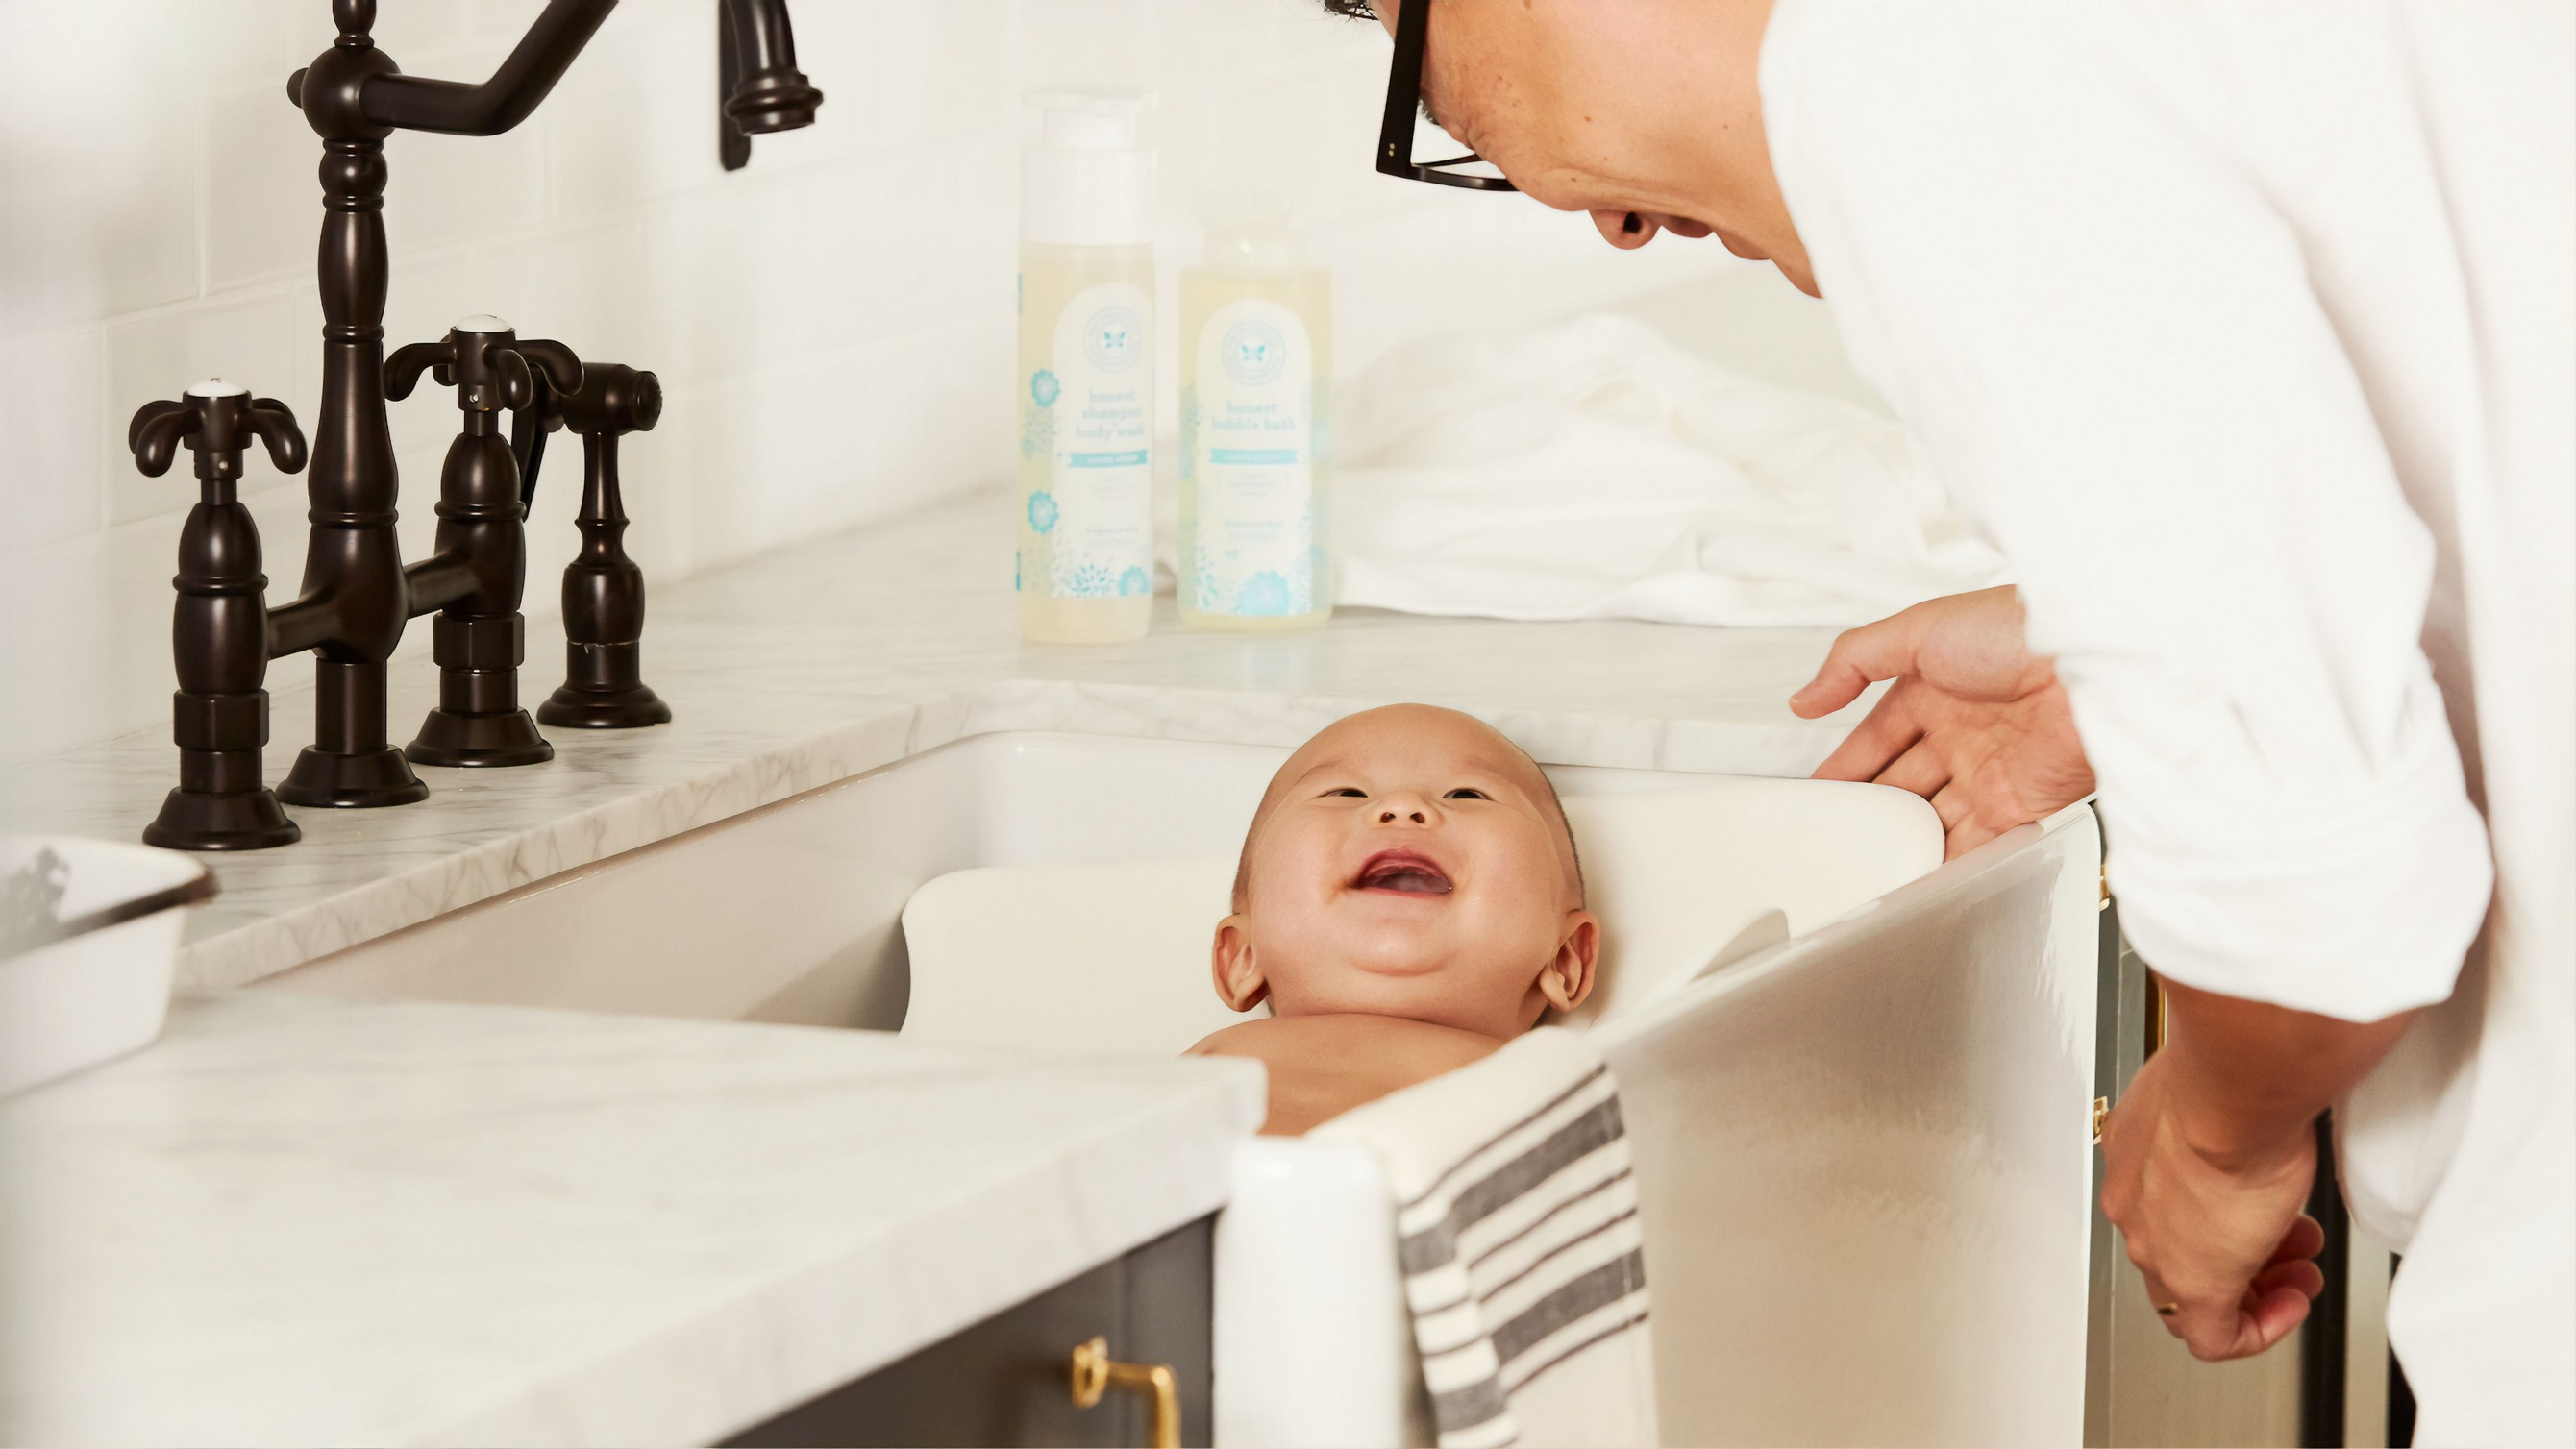 baby lying in sink, looking upwards to a parent and laughing.